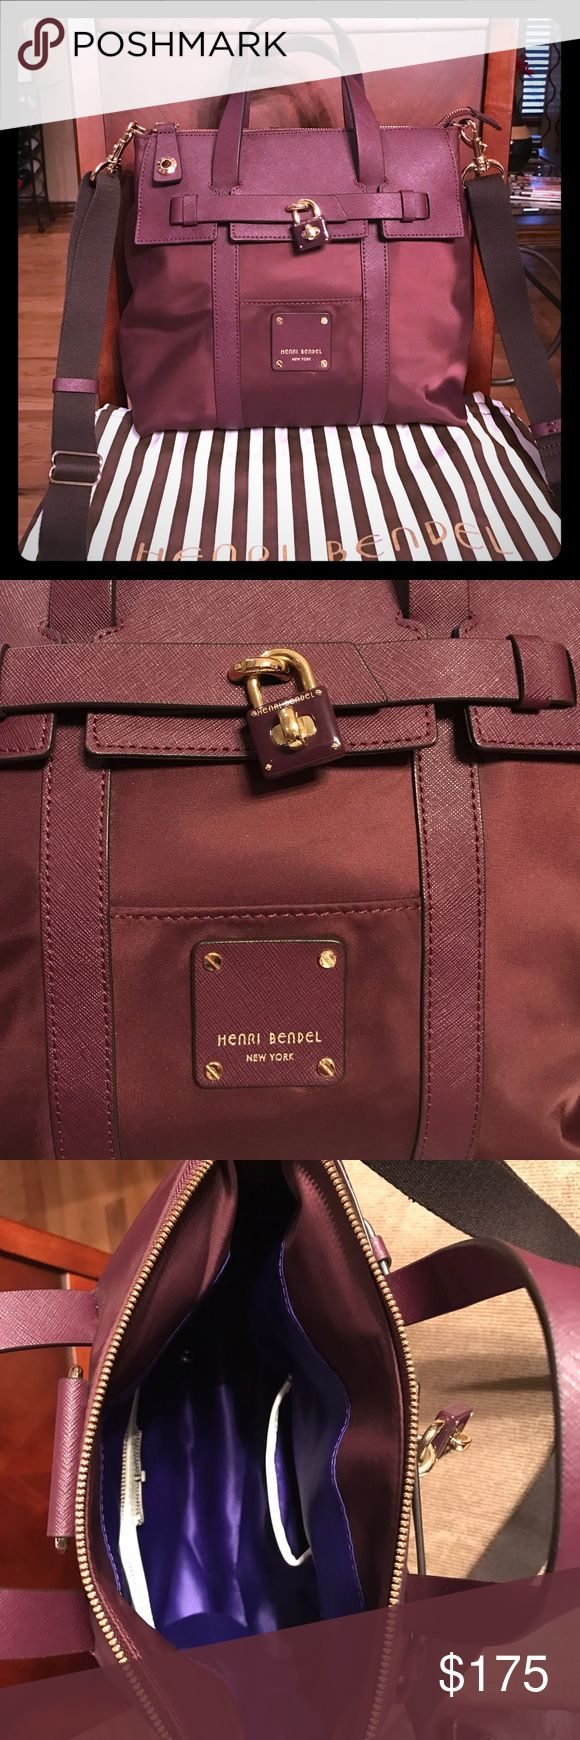 Henri Bendel jetsetter bag small size Gorgeous sold out wine color 🍷 Henri Bendel jetsetter bag. This bag can be worn as cross body, shoulder, hand carry, and back pack. Perfect for traveling!  I only used this bag for 1 week. One pocket in the back. This is the small size of the 2 jetsetter bags.  Dust bag included. henri bendel Bags Crossbody Bags